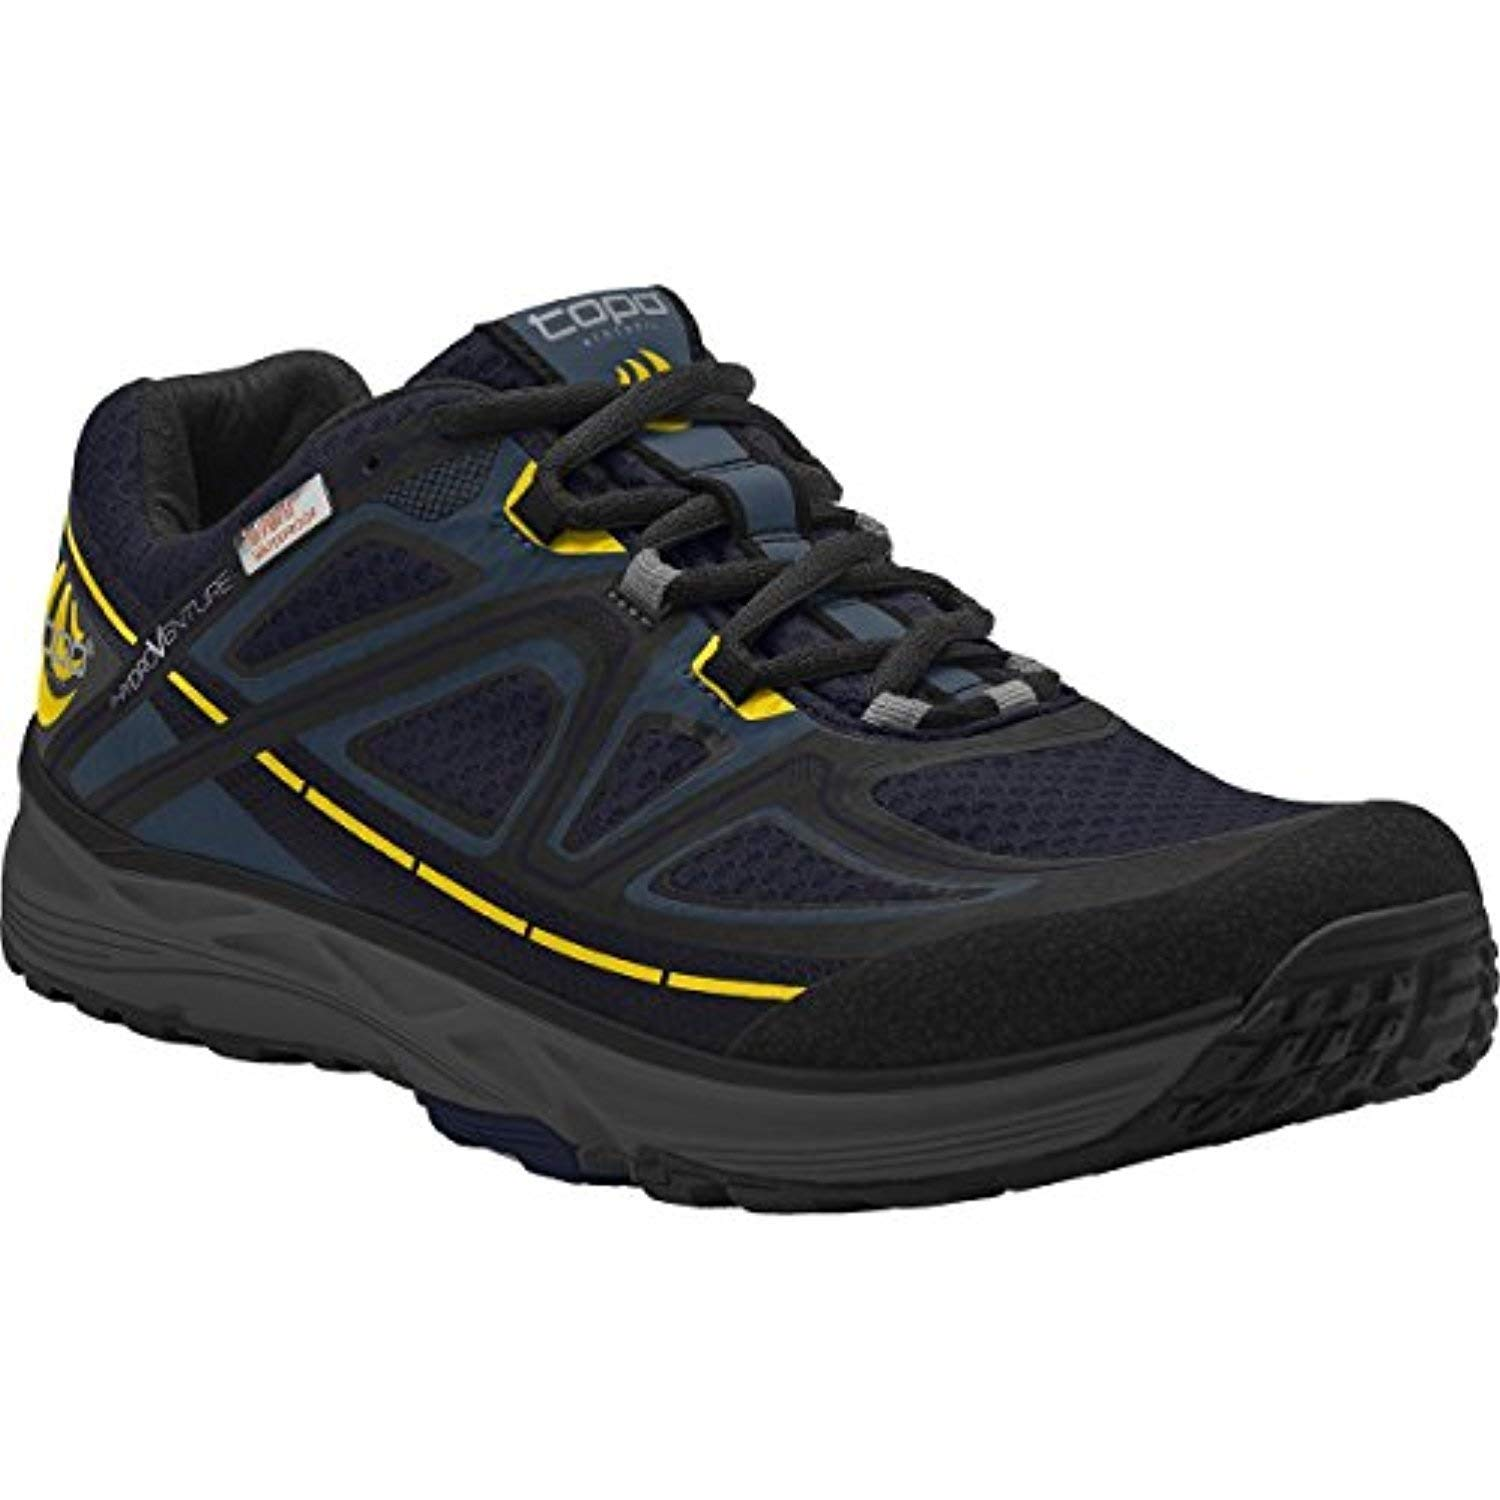 Topo Men's Hydroventure Trail Running Shoes Navy/Black 10 & Headband